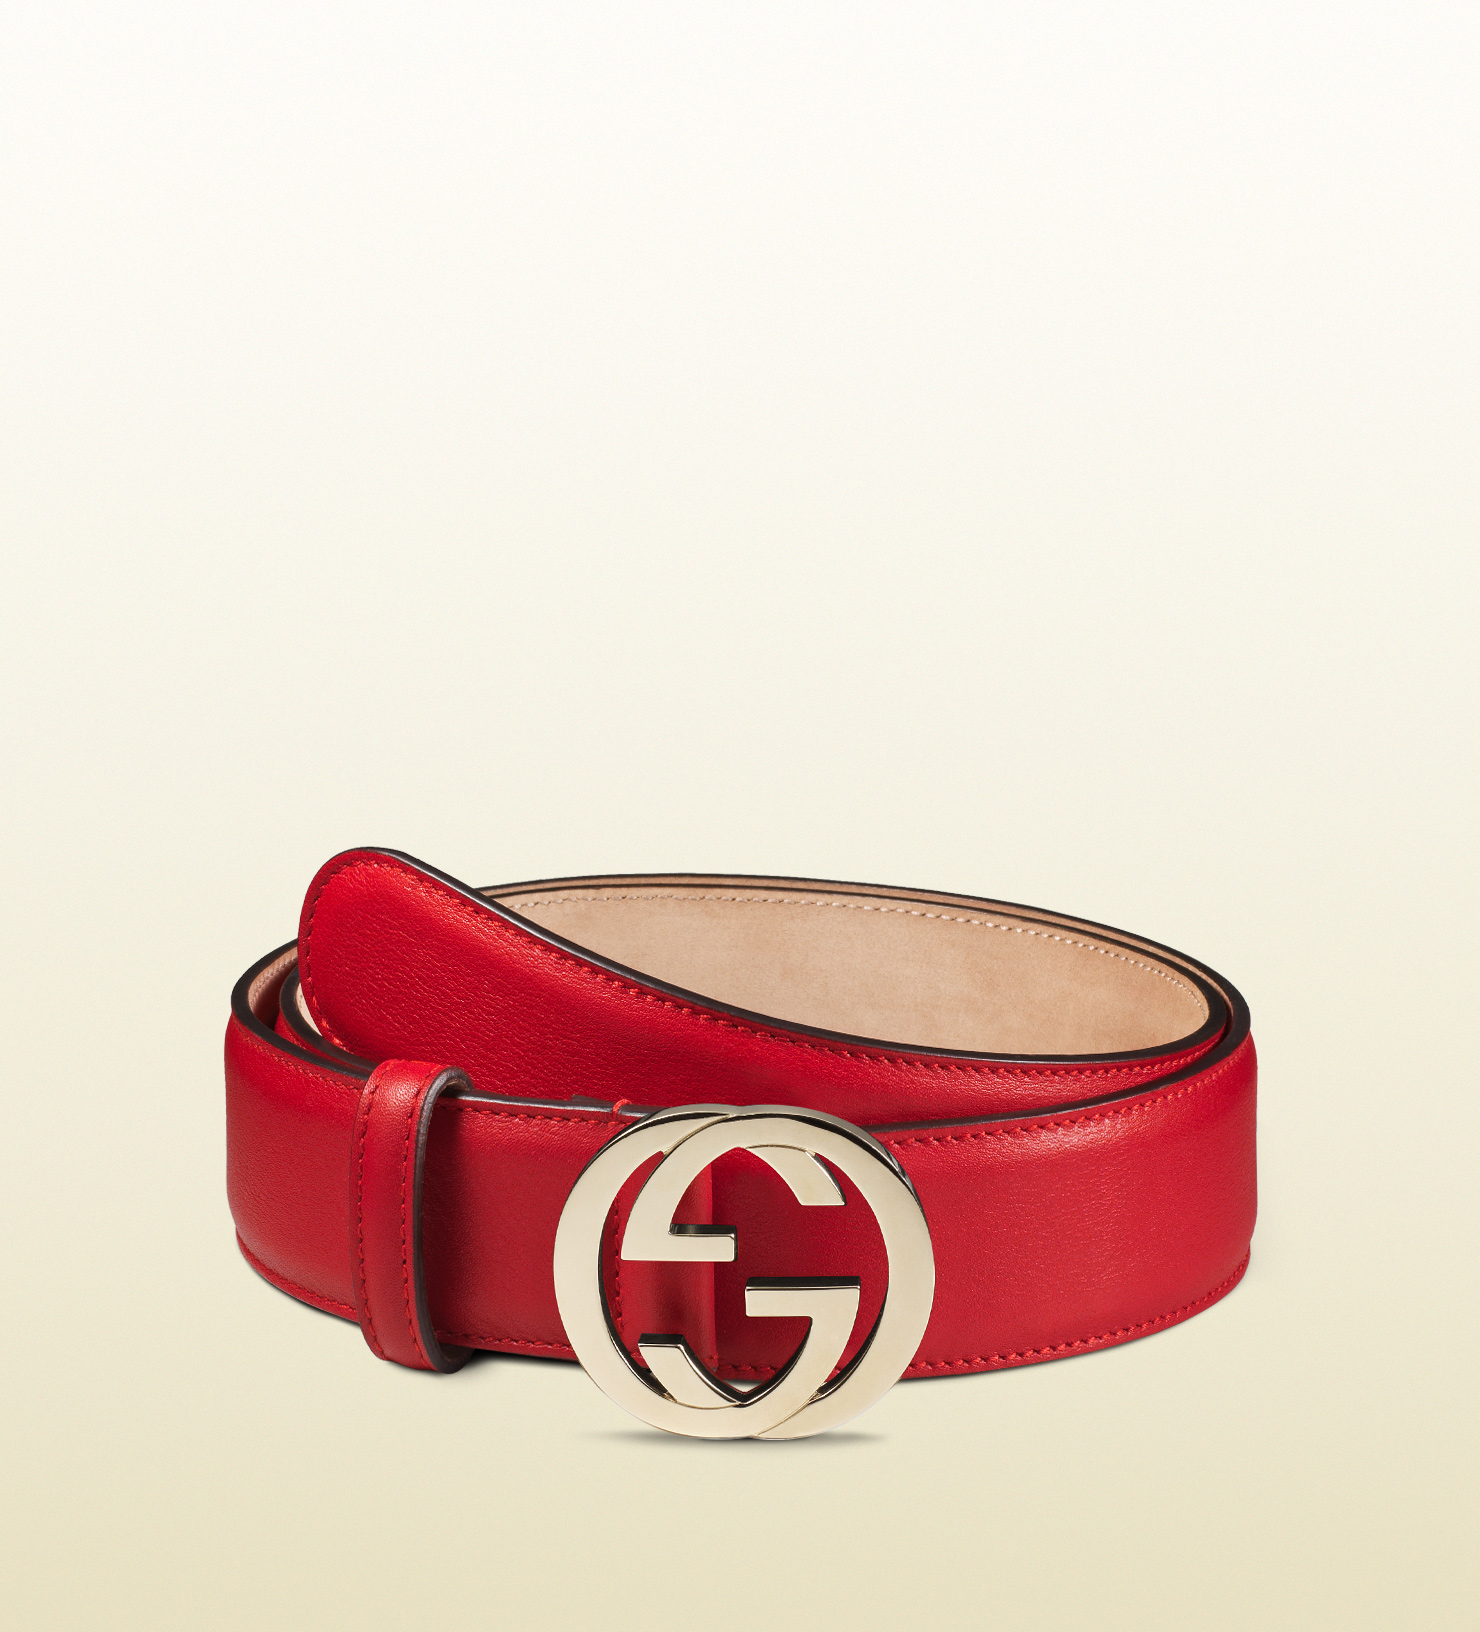 Gucci Leather Belt With Interlocking G Buckle in Red | Lyst